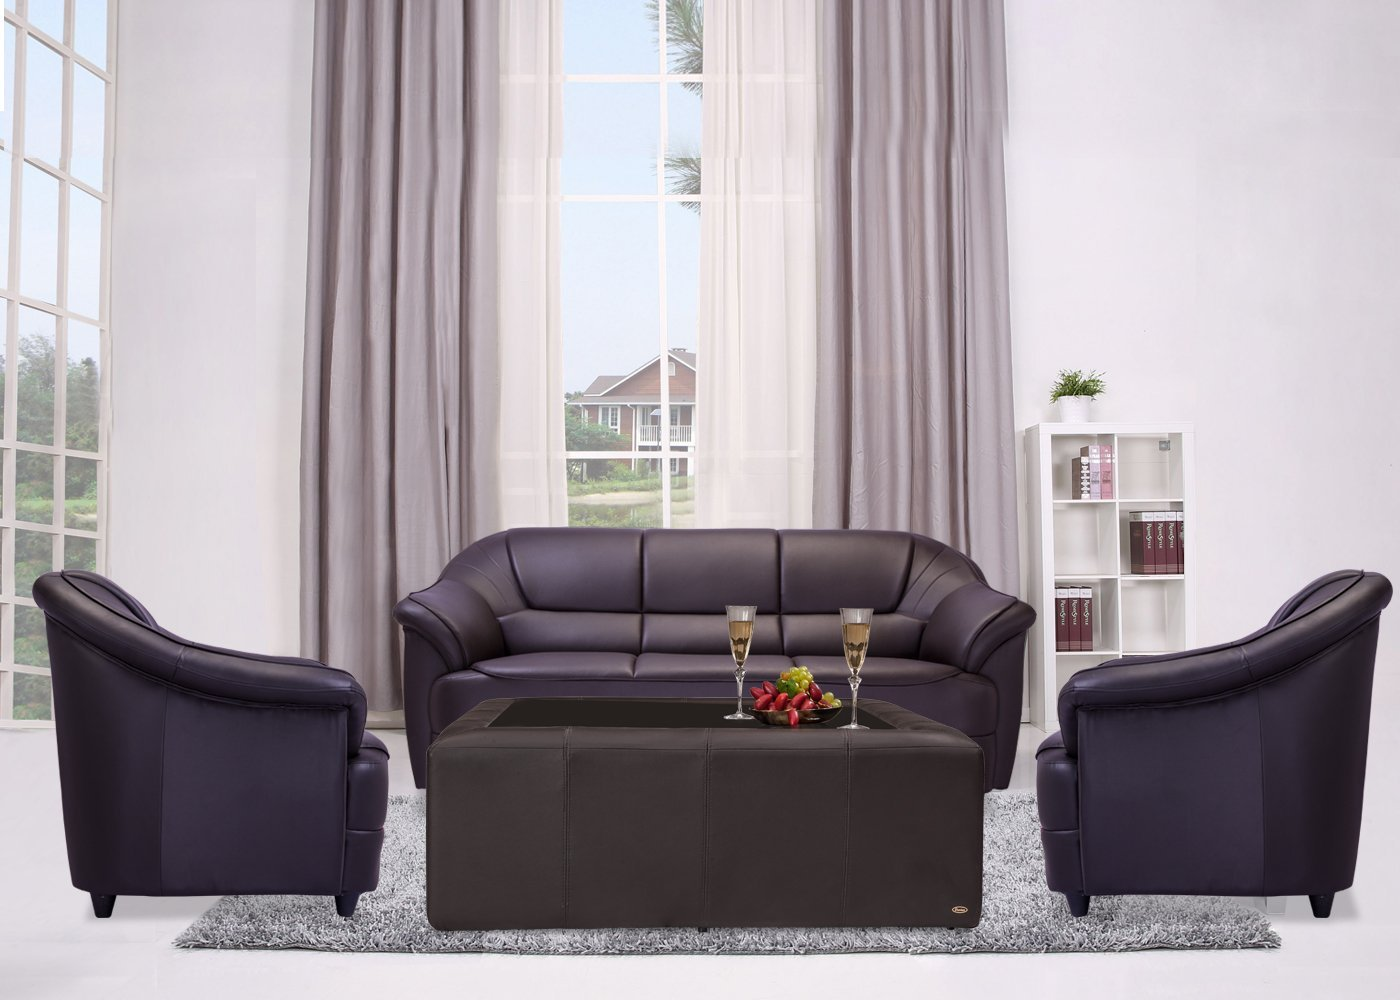 brown sofa sets. Durian Berry Five Seater Sofa Set 3-1-1 (Matte Finish, Coffee Brown): Amazon.in: Home \u0026 Kitchen Brown Sets H